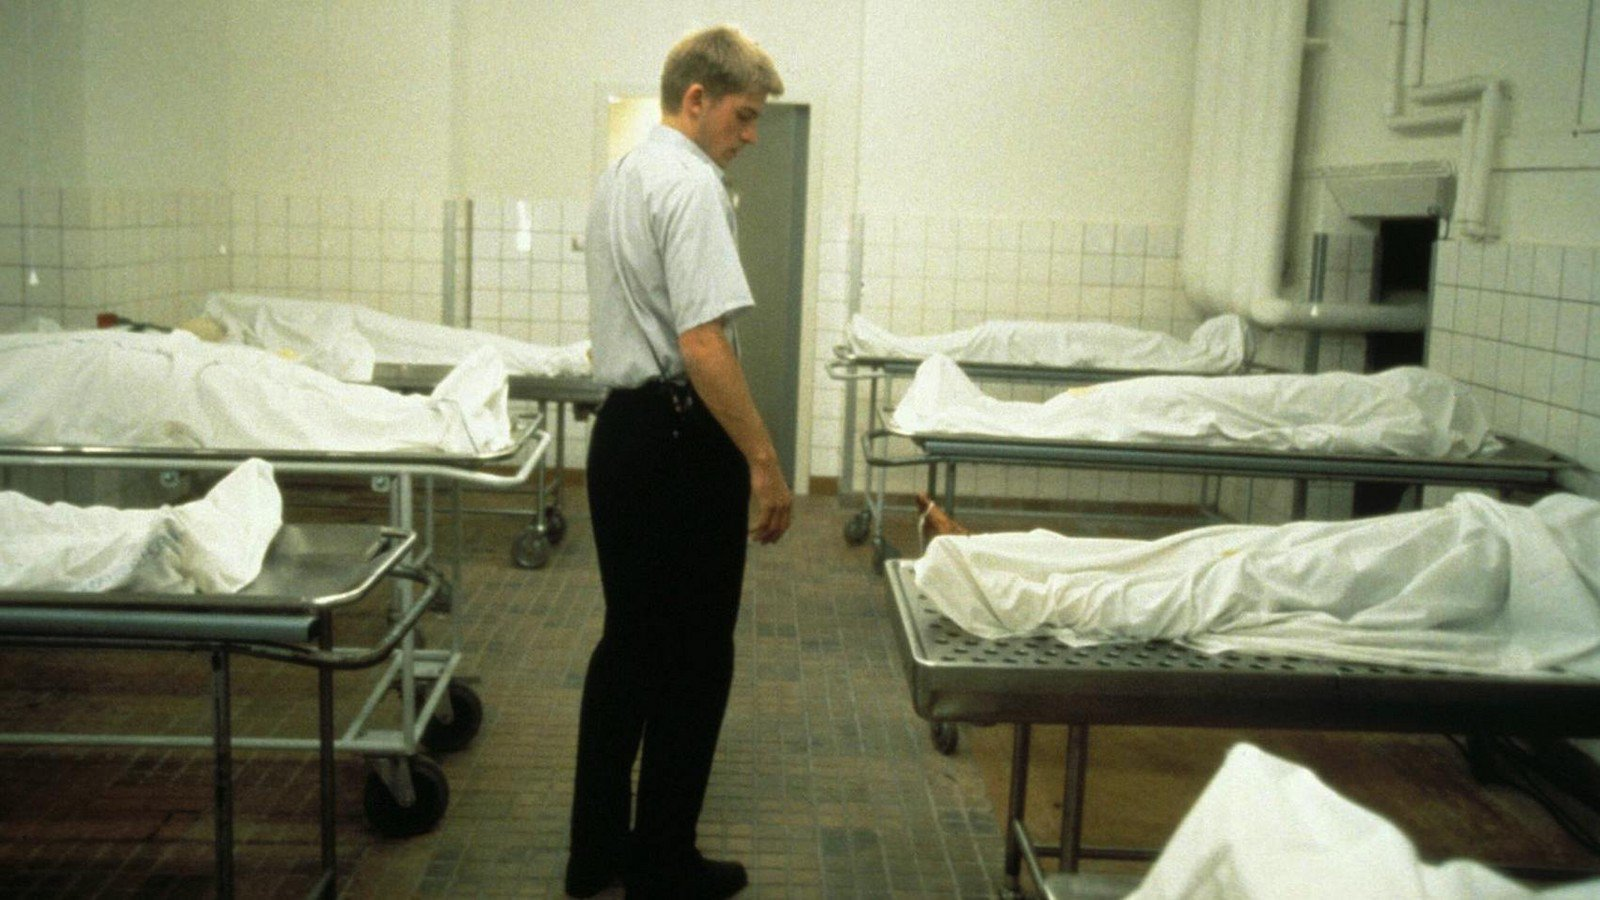 Martin Bork (Nicholaj Coster Waldau) on the job at the morgue in Nightwatch (1994)